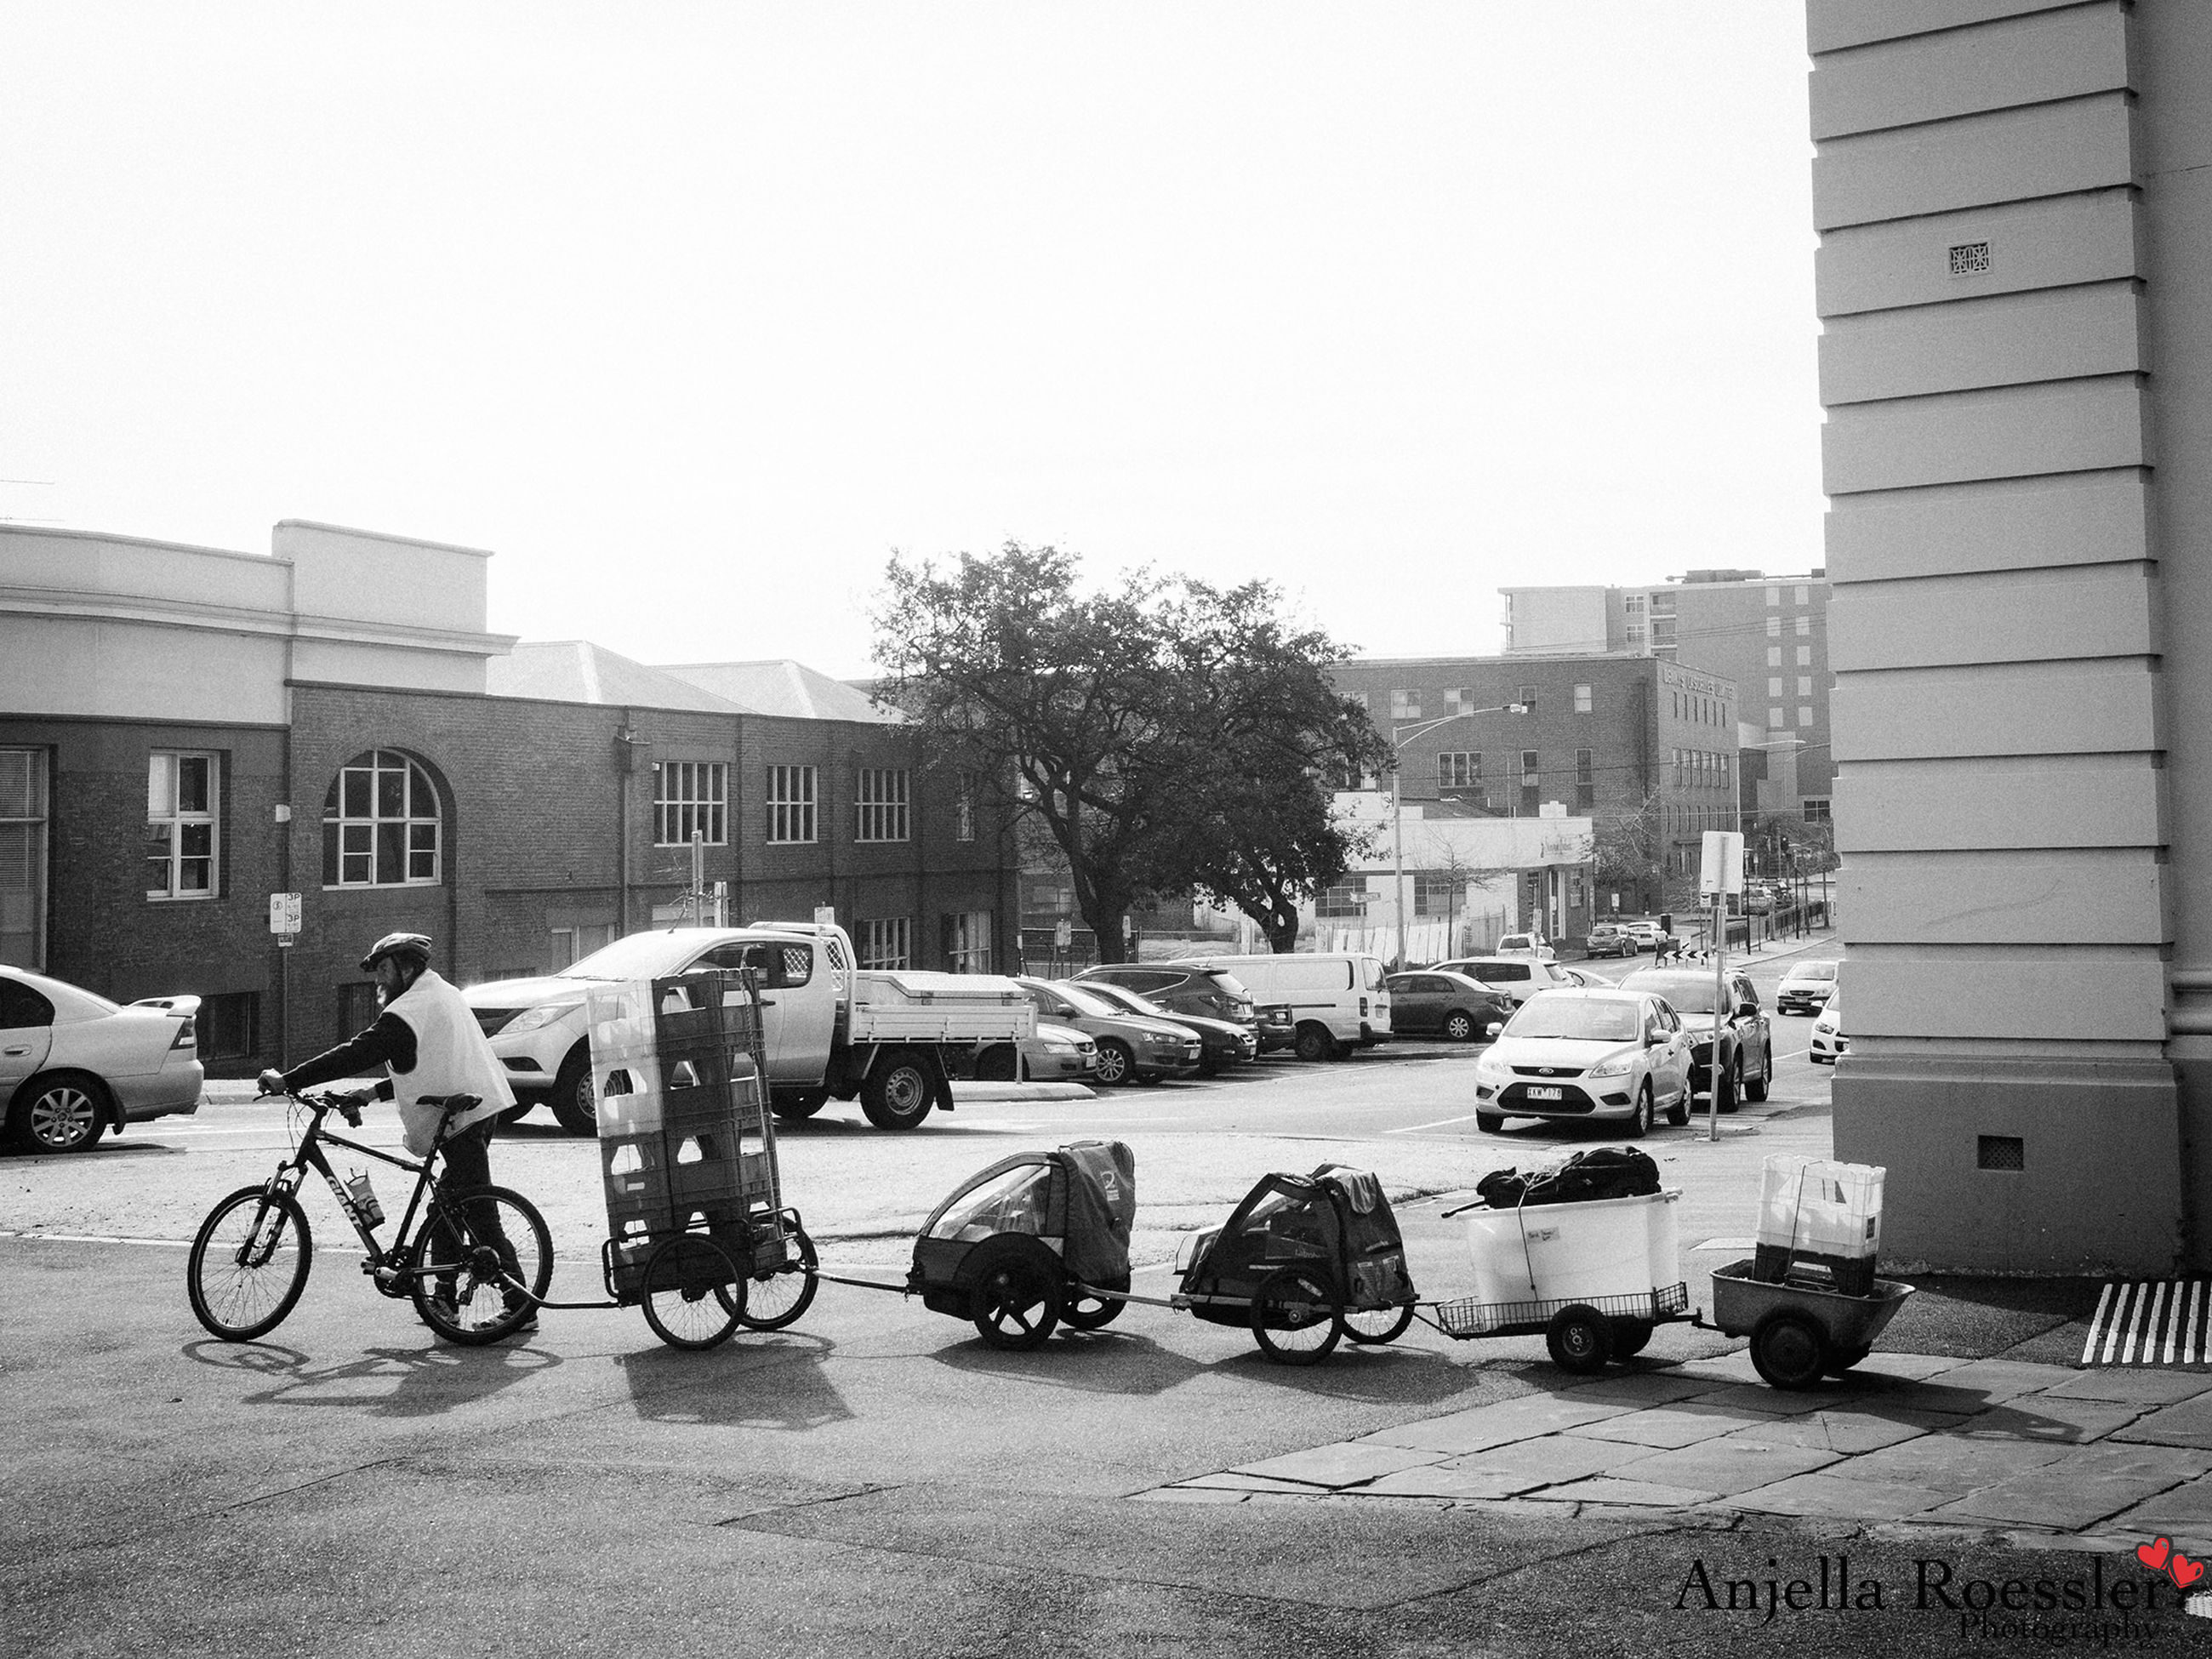 transportation, land vehicle, mode of transport, bicycle, building exterior, architecture, built structure, parked, stationary, parking, street, car, city, riding, men, motorcycle, city life, road, travel